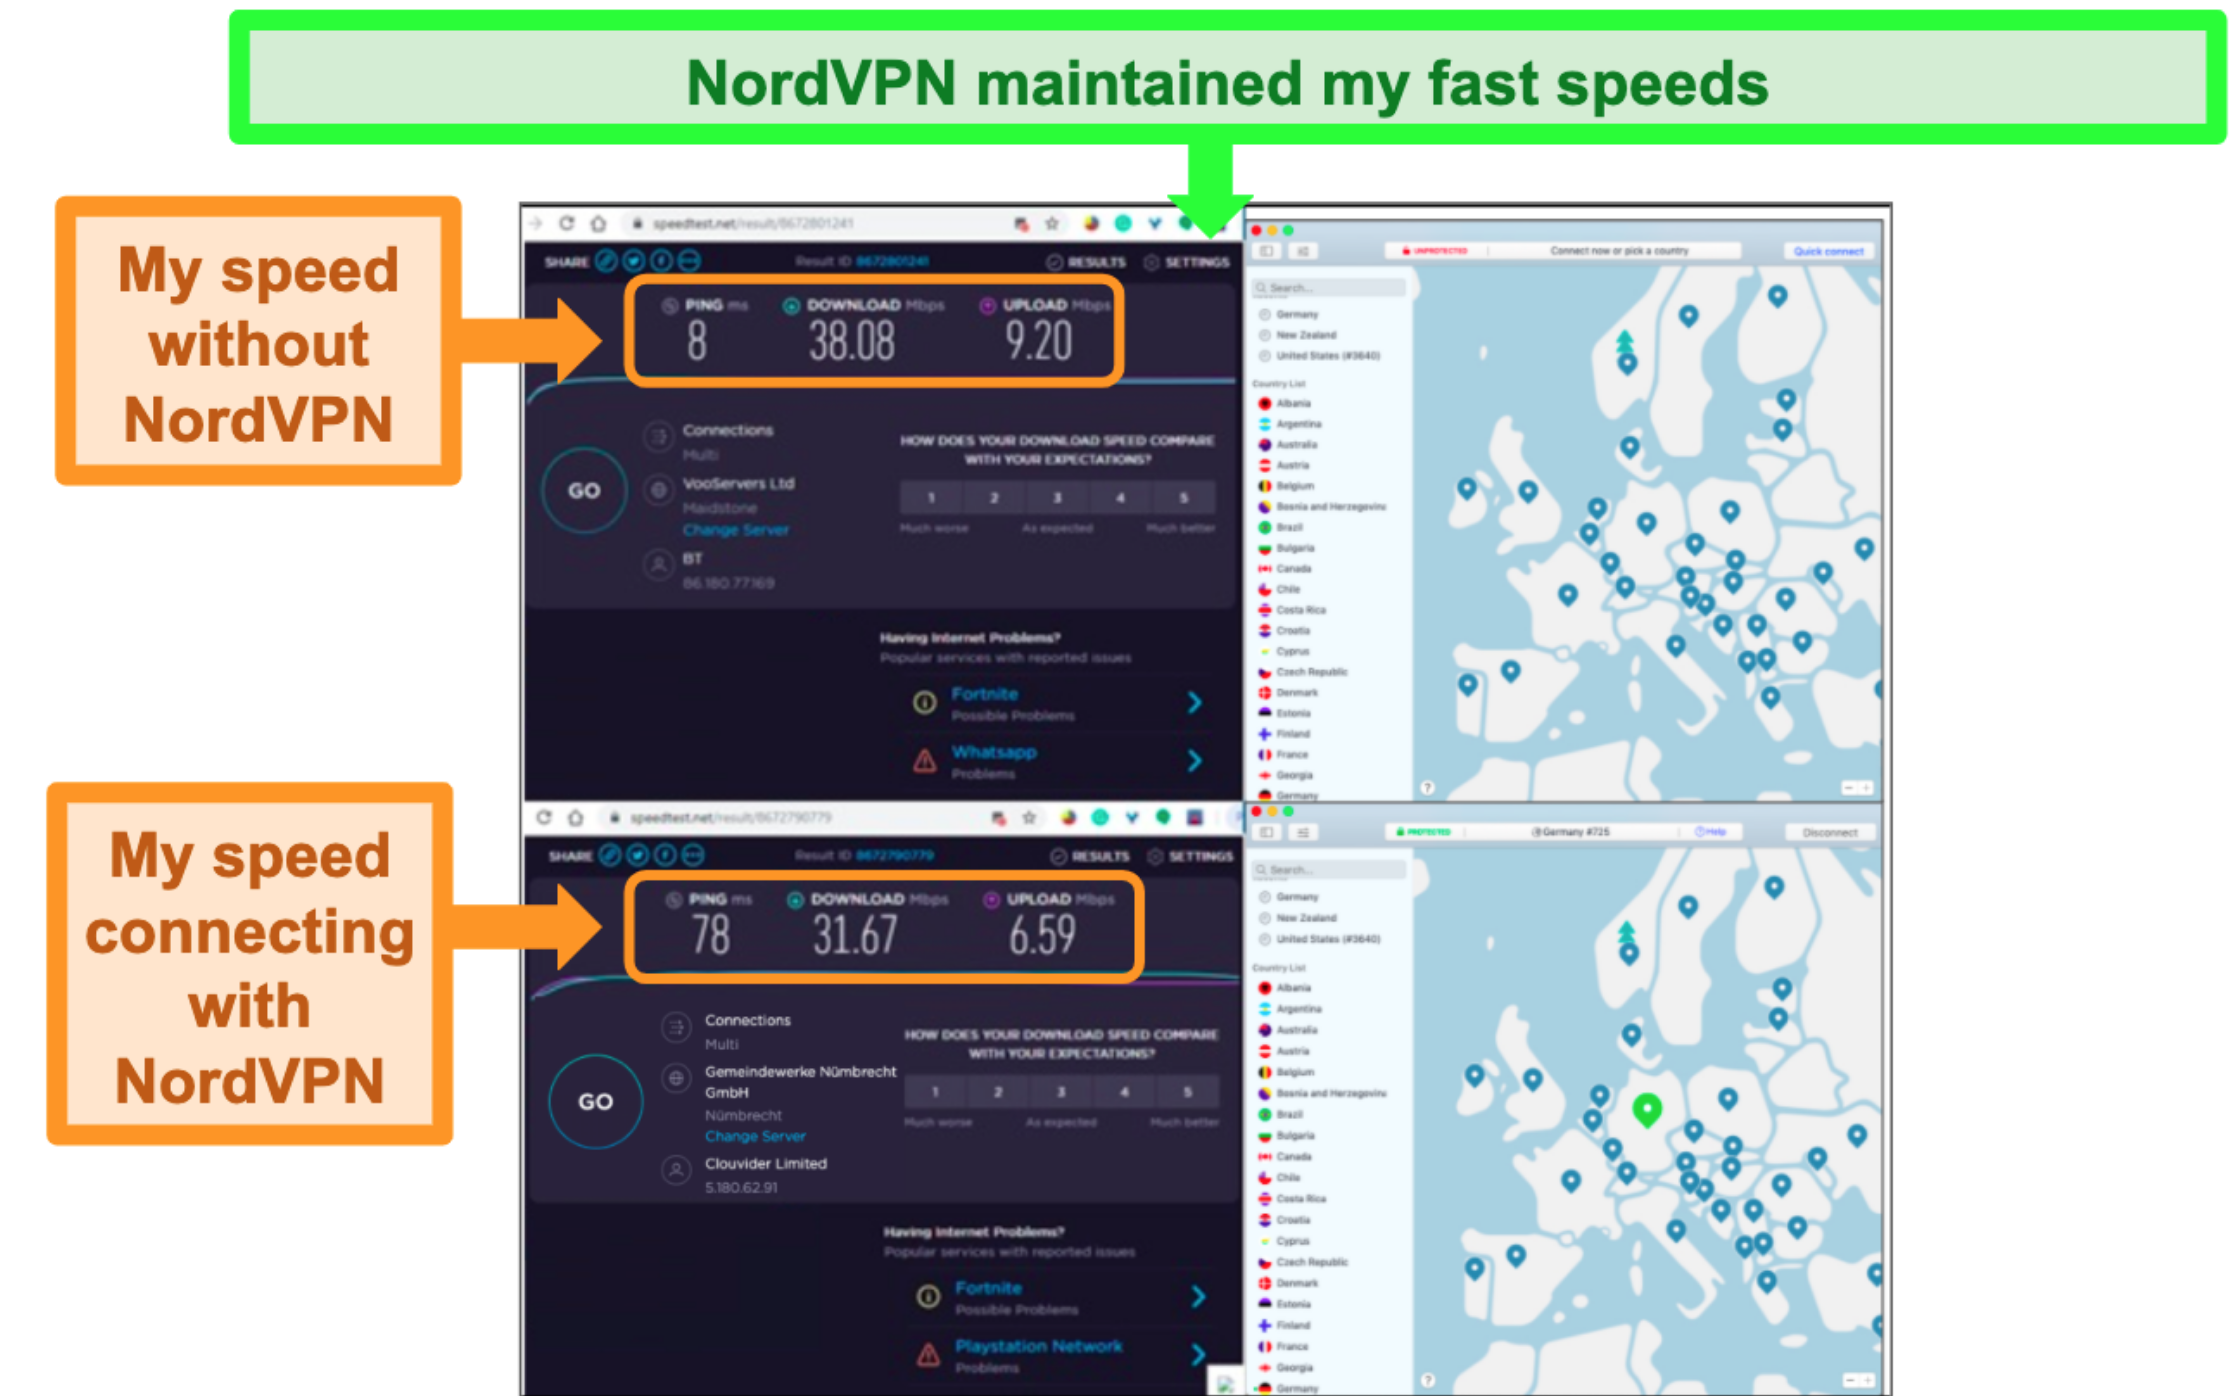 Screenshot of nordvpn successfully maintaining fast speeds while connected to a German server.